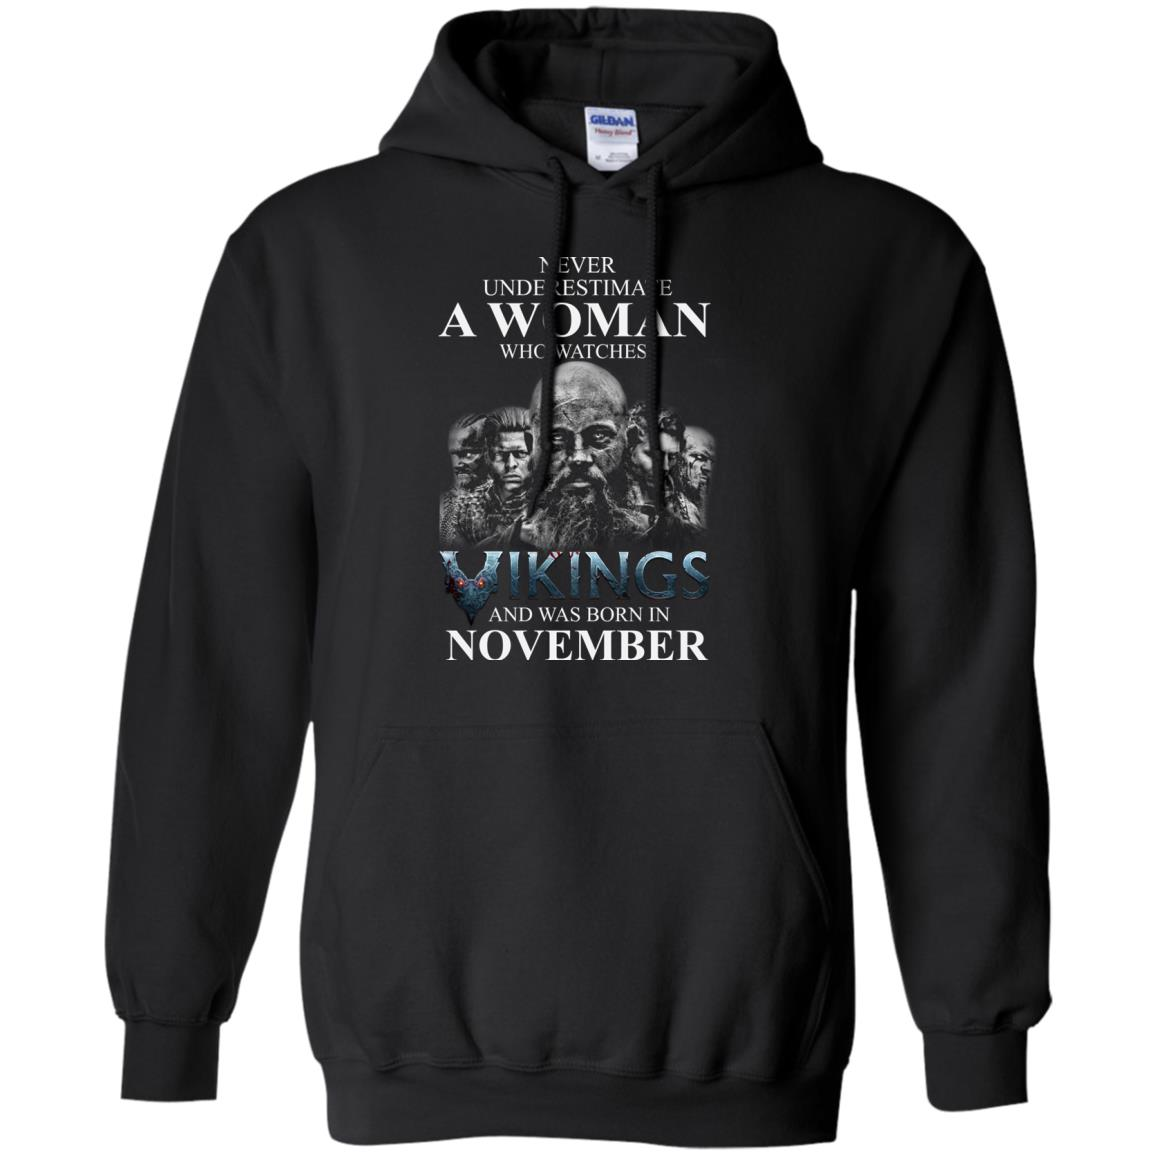 image 1235 - Never Underestimate A woman who watches Vikings and was born in November shirt